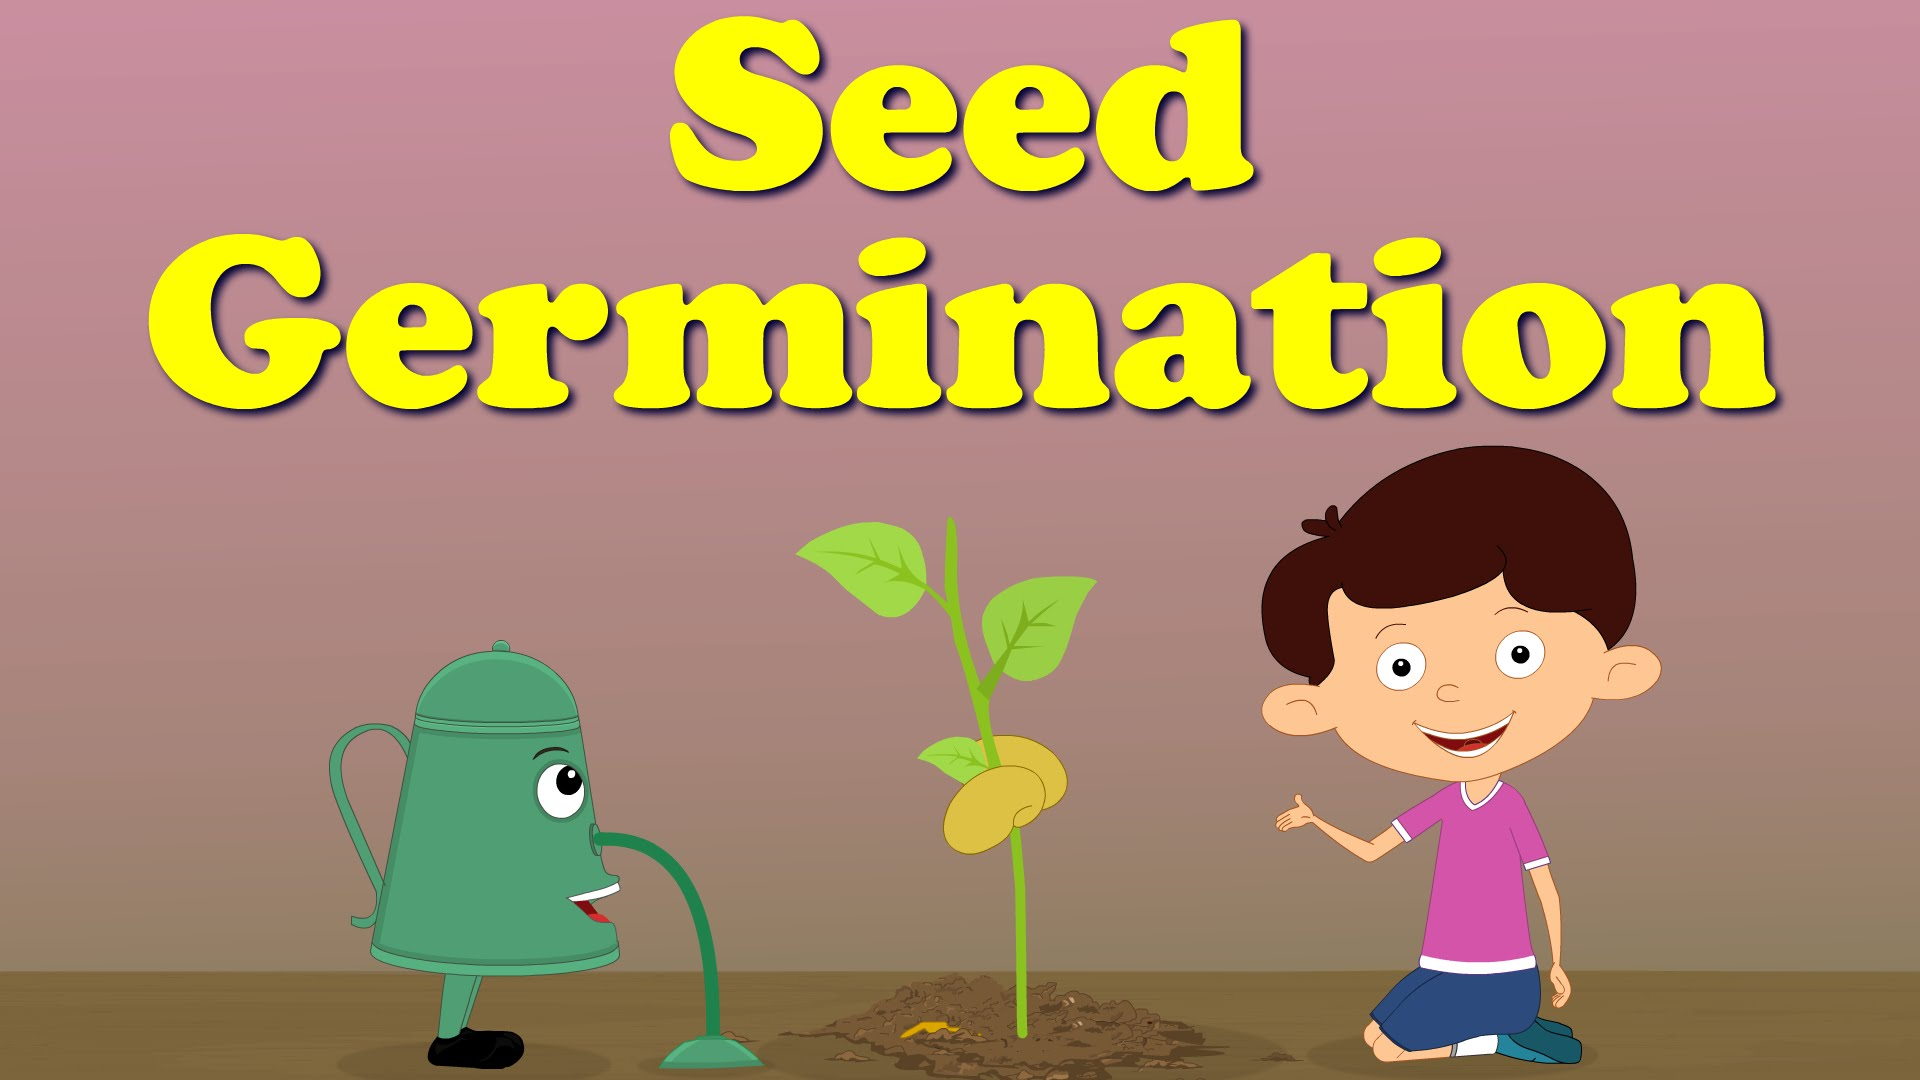 Easiest way to germinate any seeds